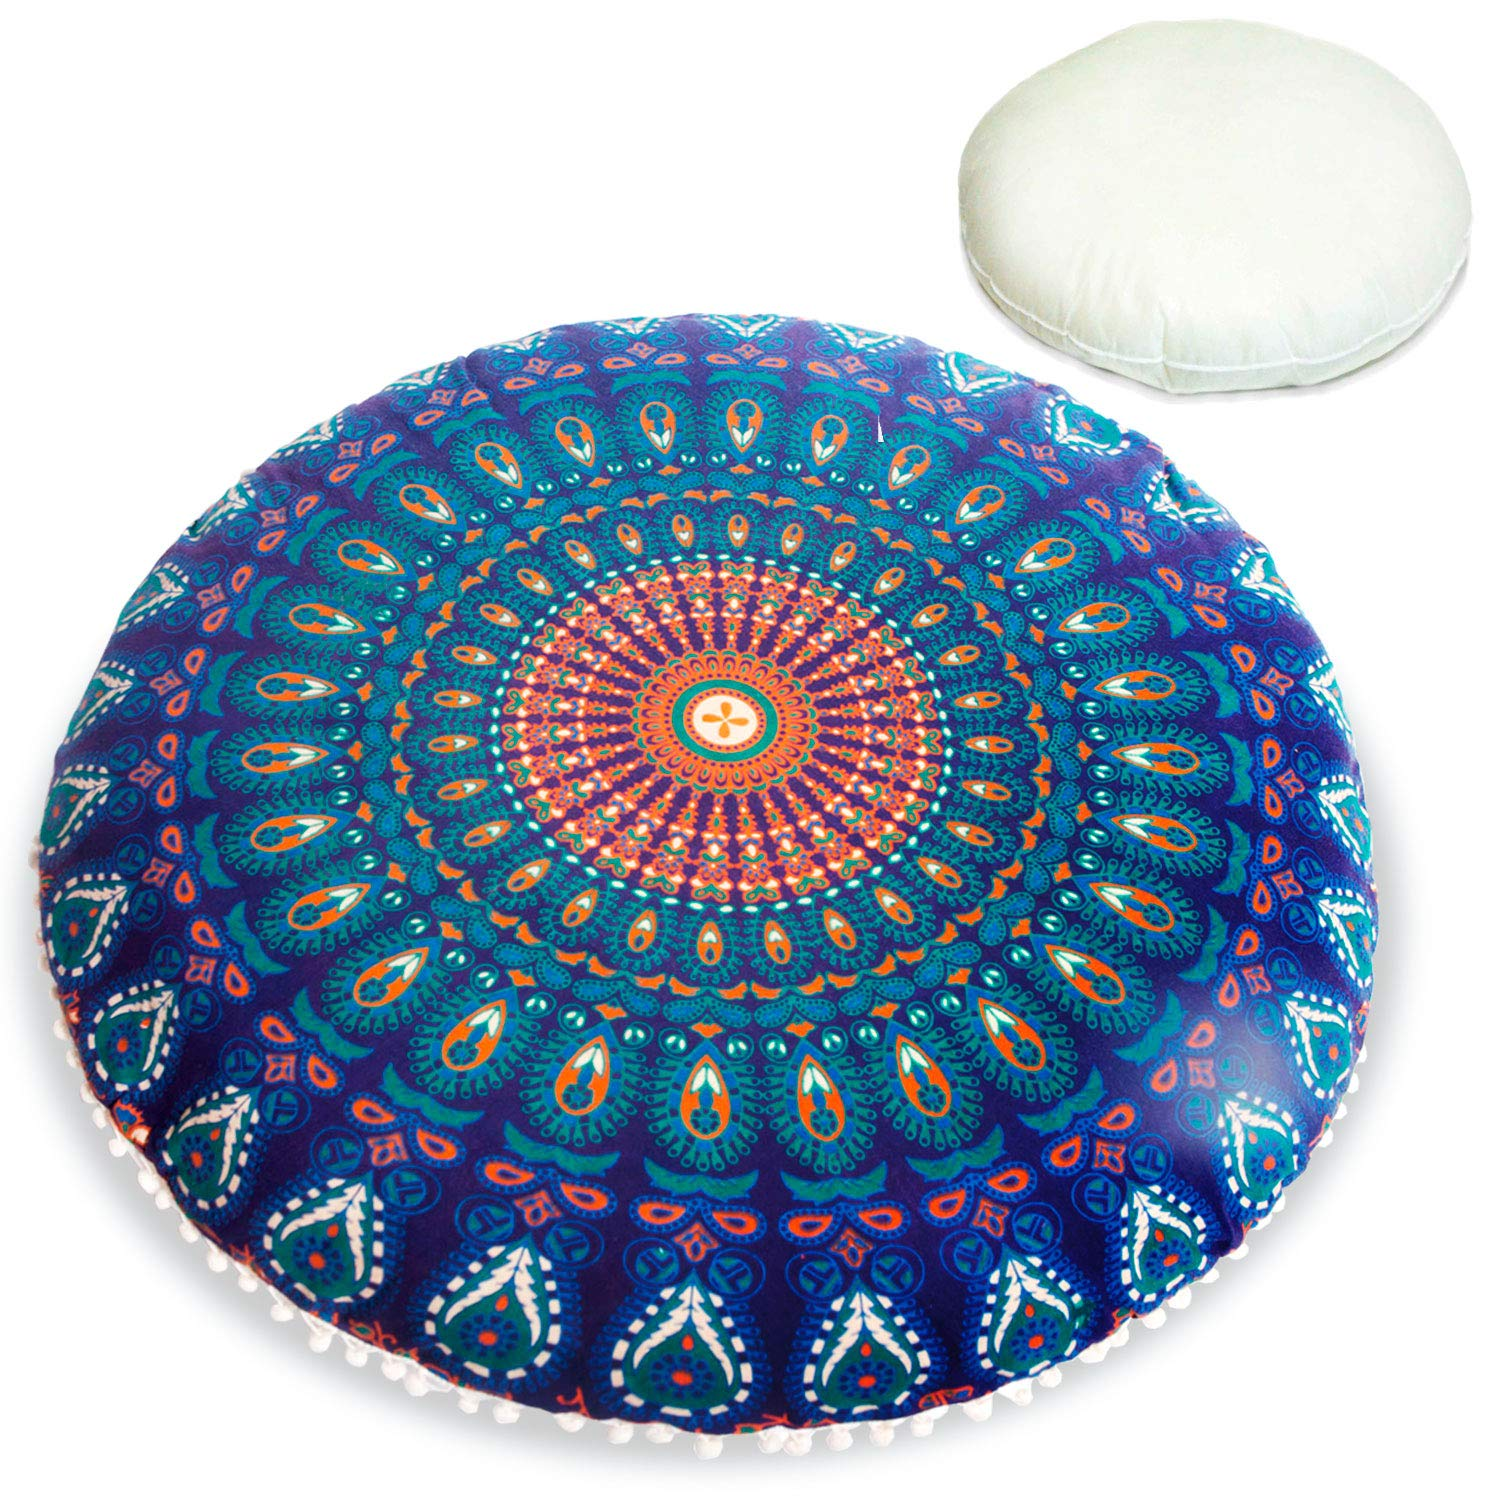 Bohemian Floor Cushion –STUFFED–Luxury, Artisan Room Décor Pouf for Meditation, Yoga, and Boho Chic Seating Area Floor Pillow – Accent Your Living Room, Bedroom, More – Handmade in India by Mandala Life ART